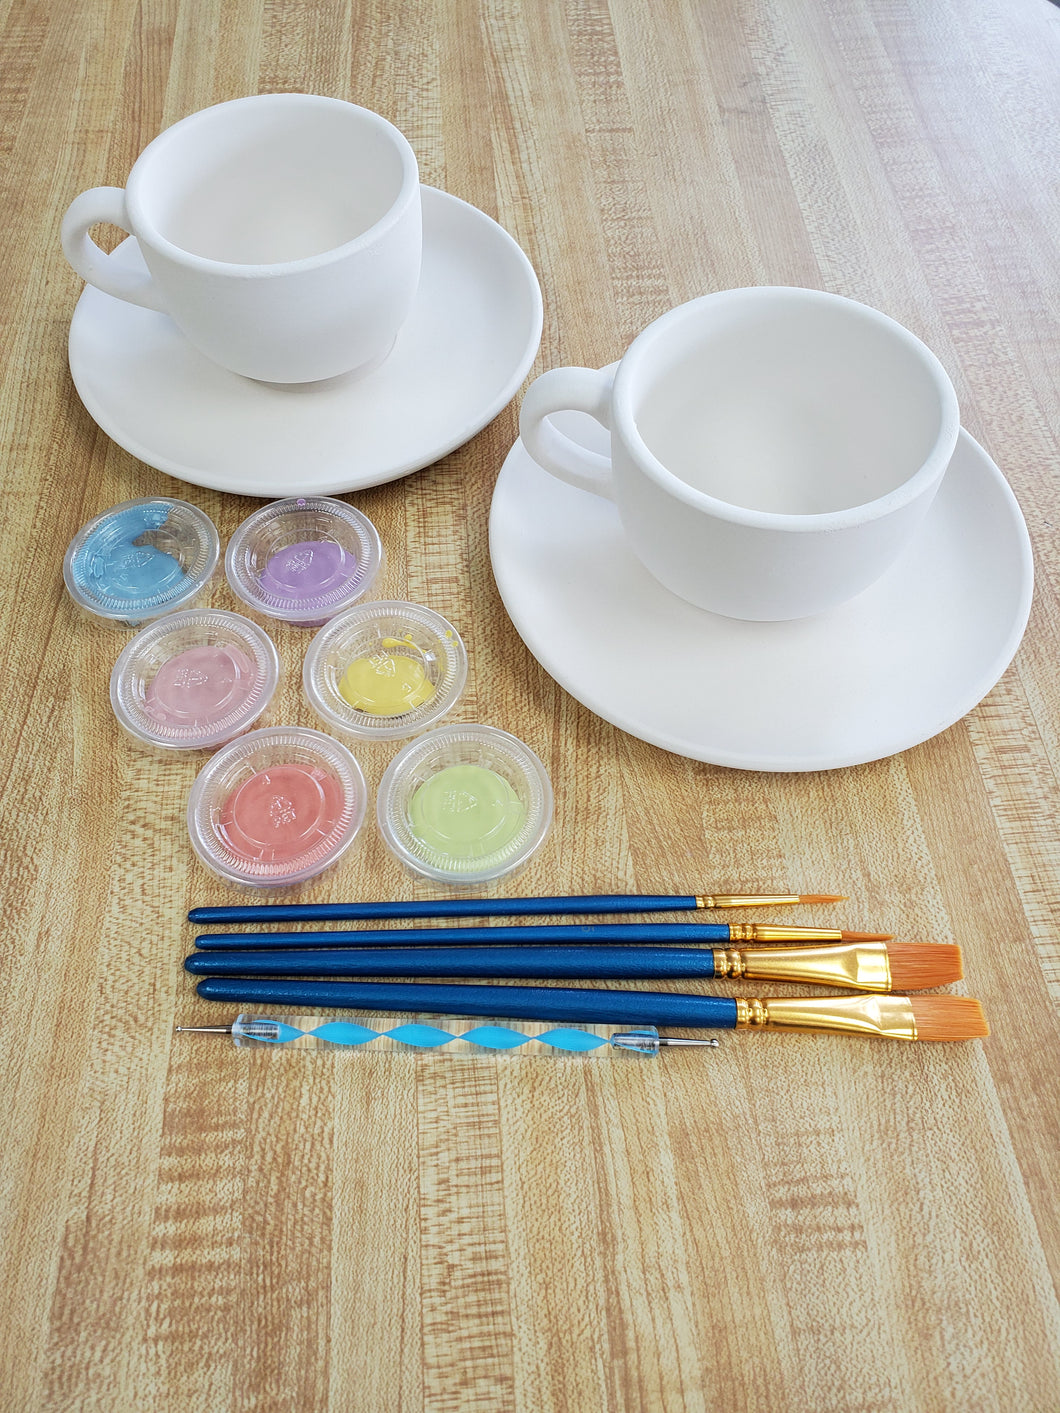 Tea Set Kit 2 cups and 2 saucers